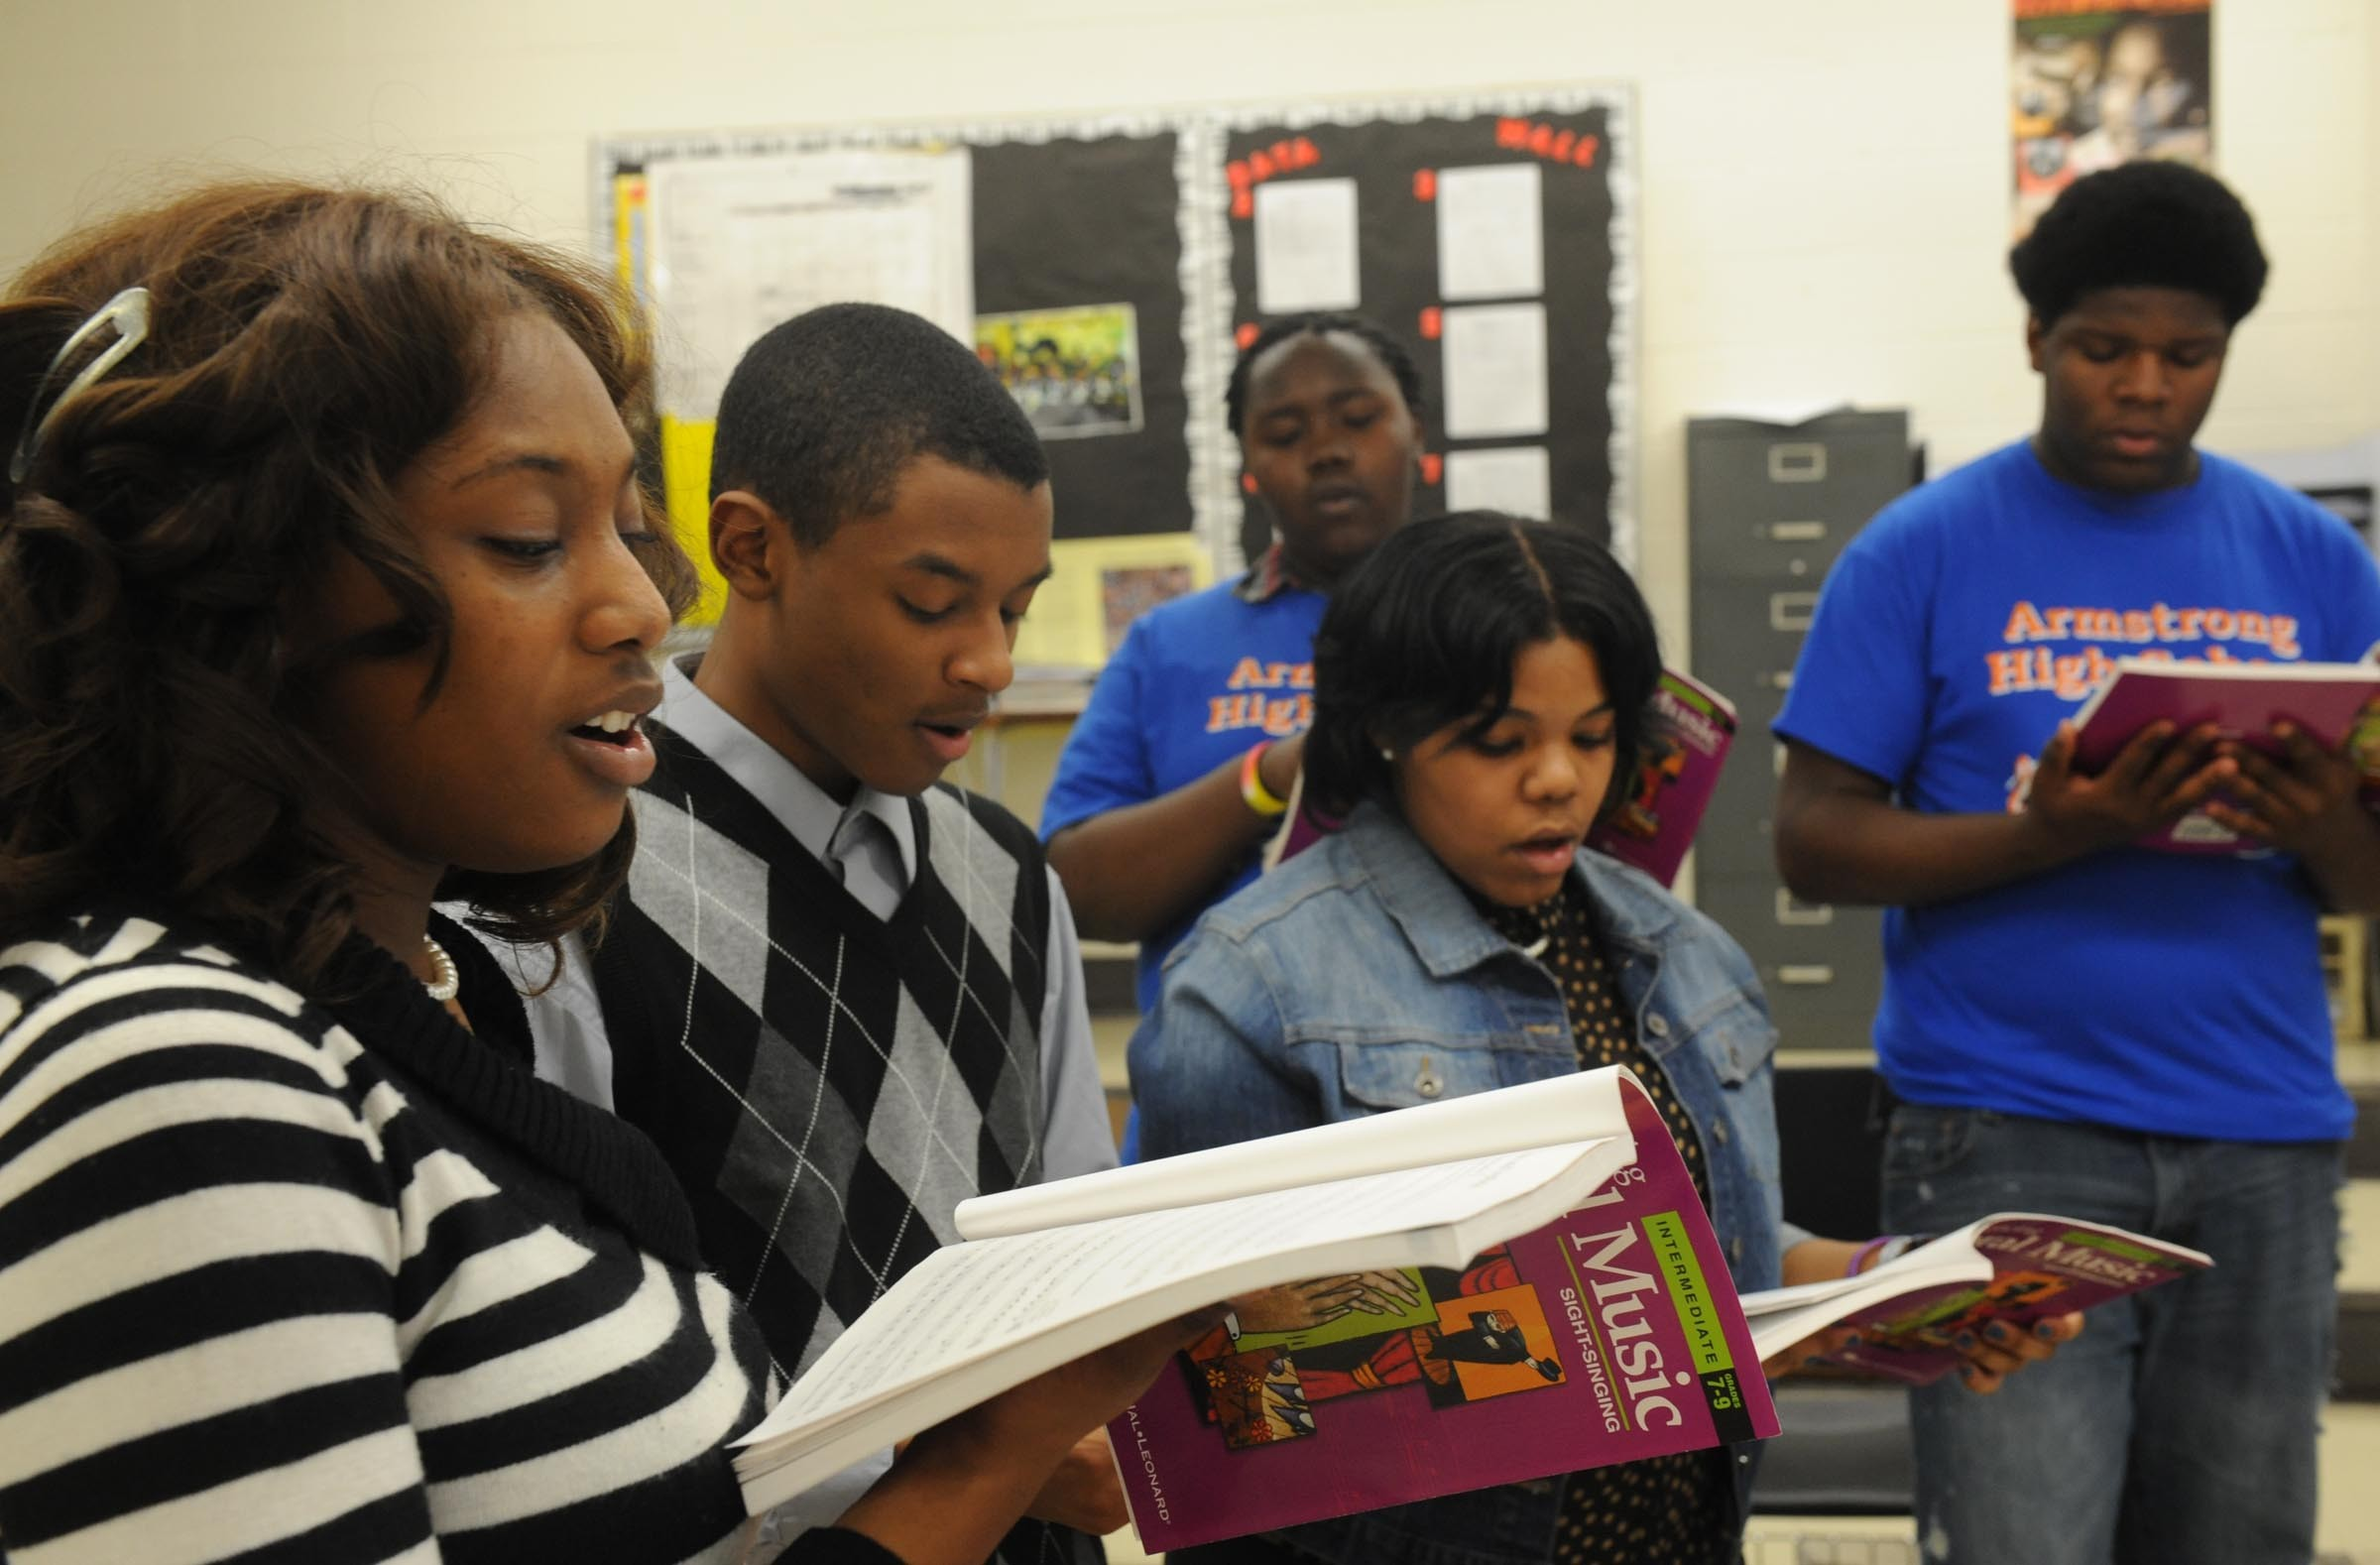 Members of the Armstrong High School choir were offered a chance to sing at Carnegie Hall, but the school can't afford to send them to New York. - SCOTT ELMQUIST